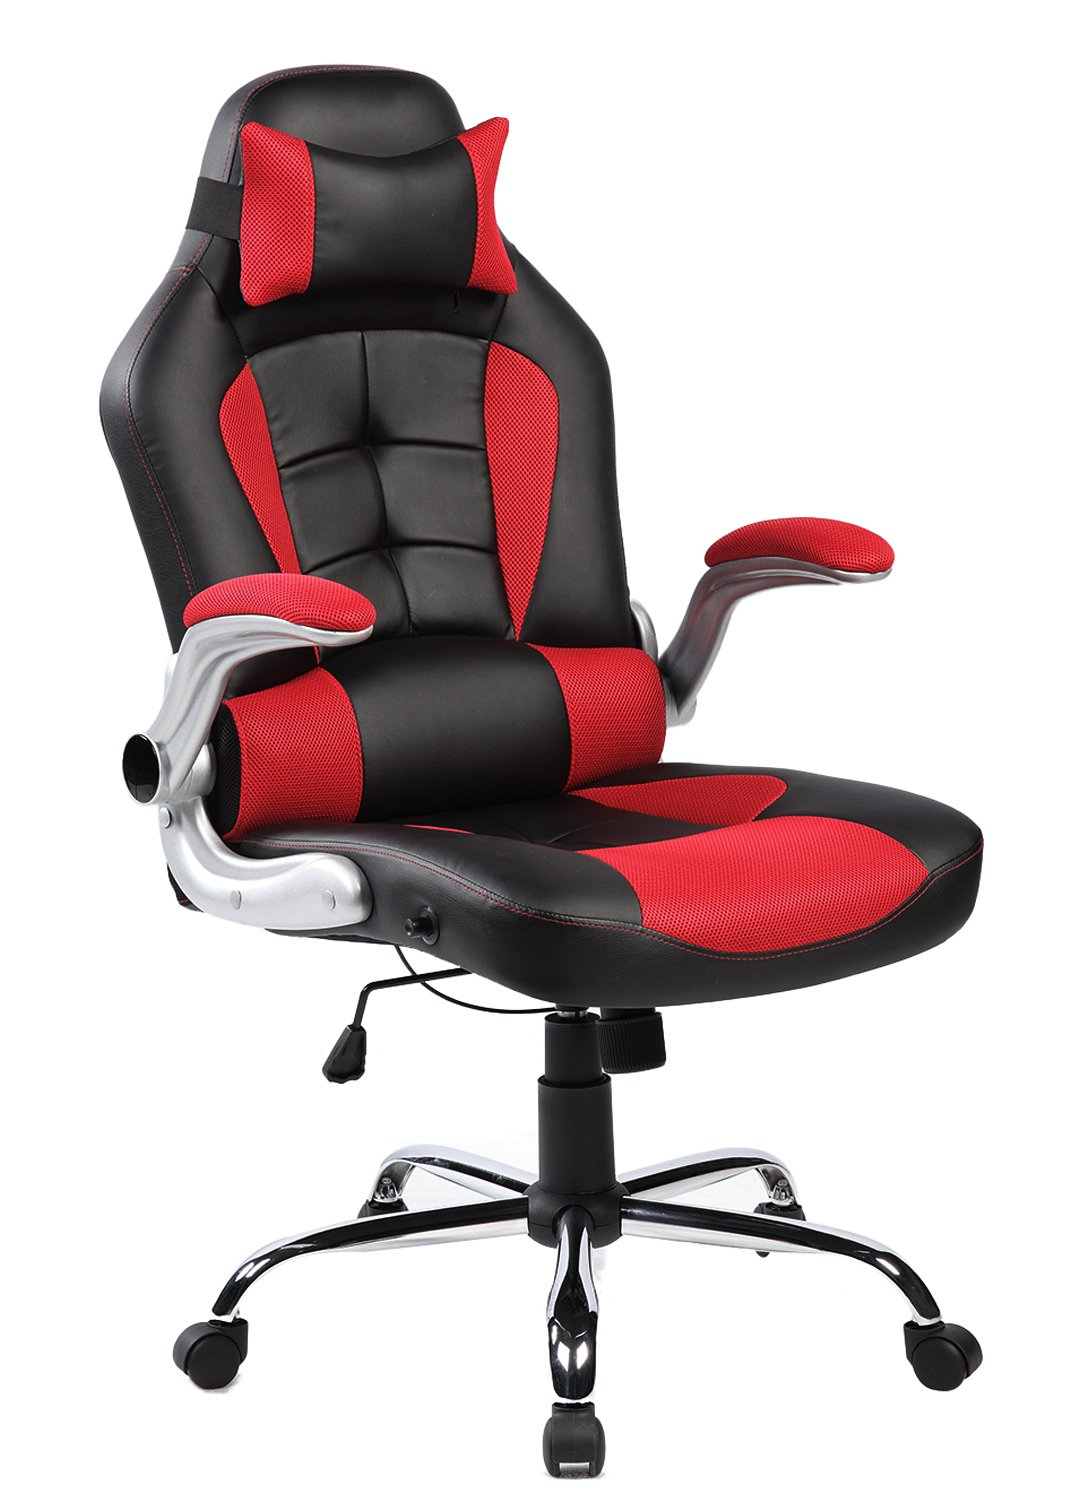 Best Office Chair for Lumbar Support Reviews and Comparison